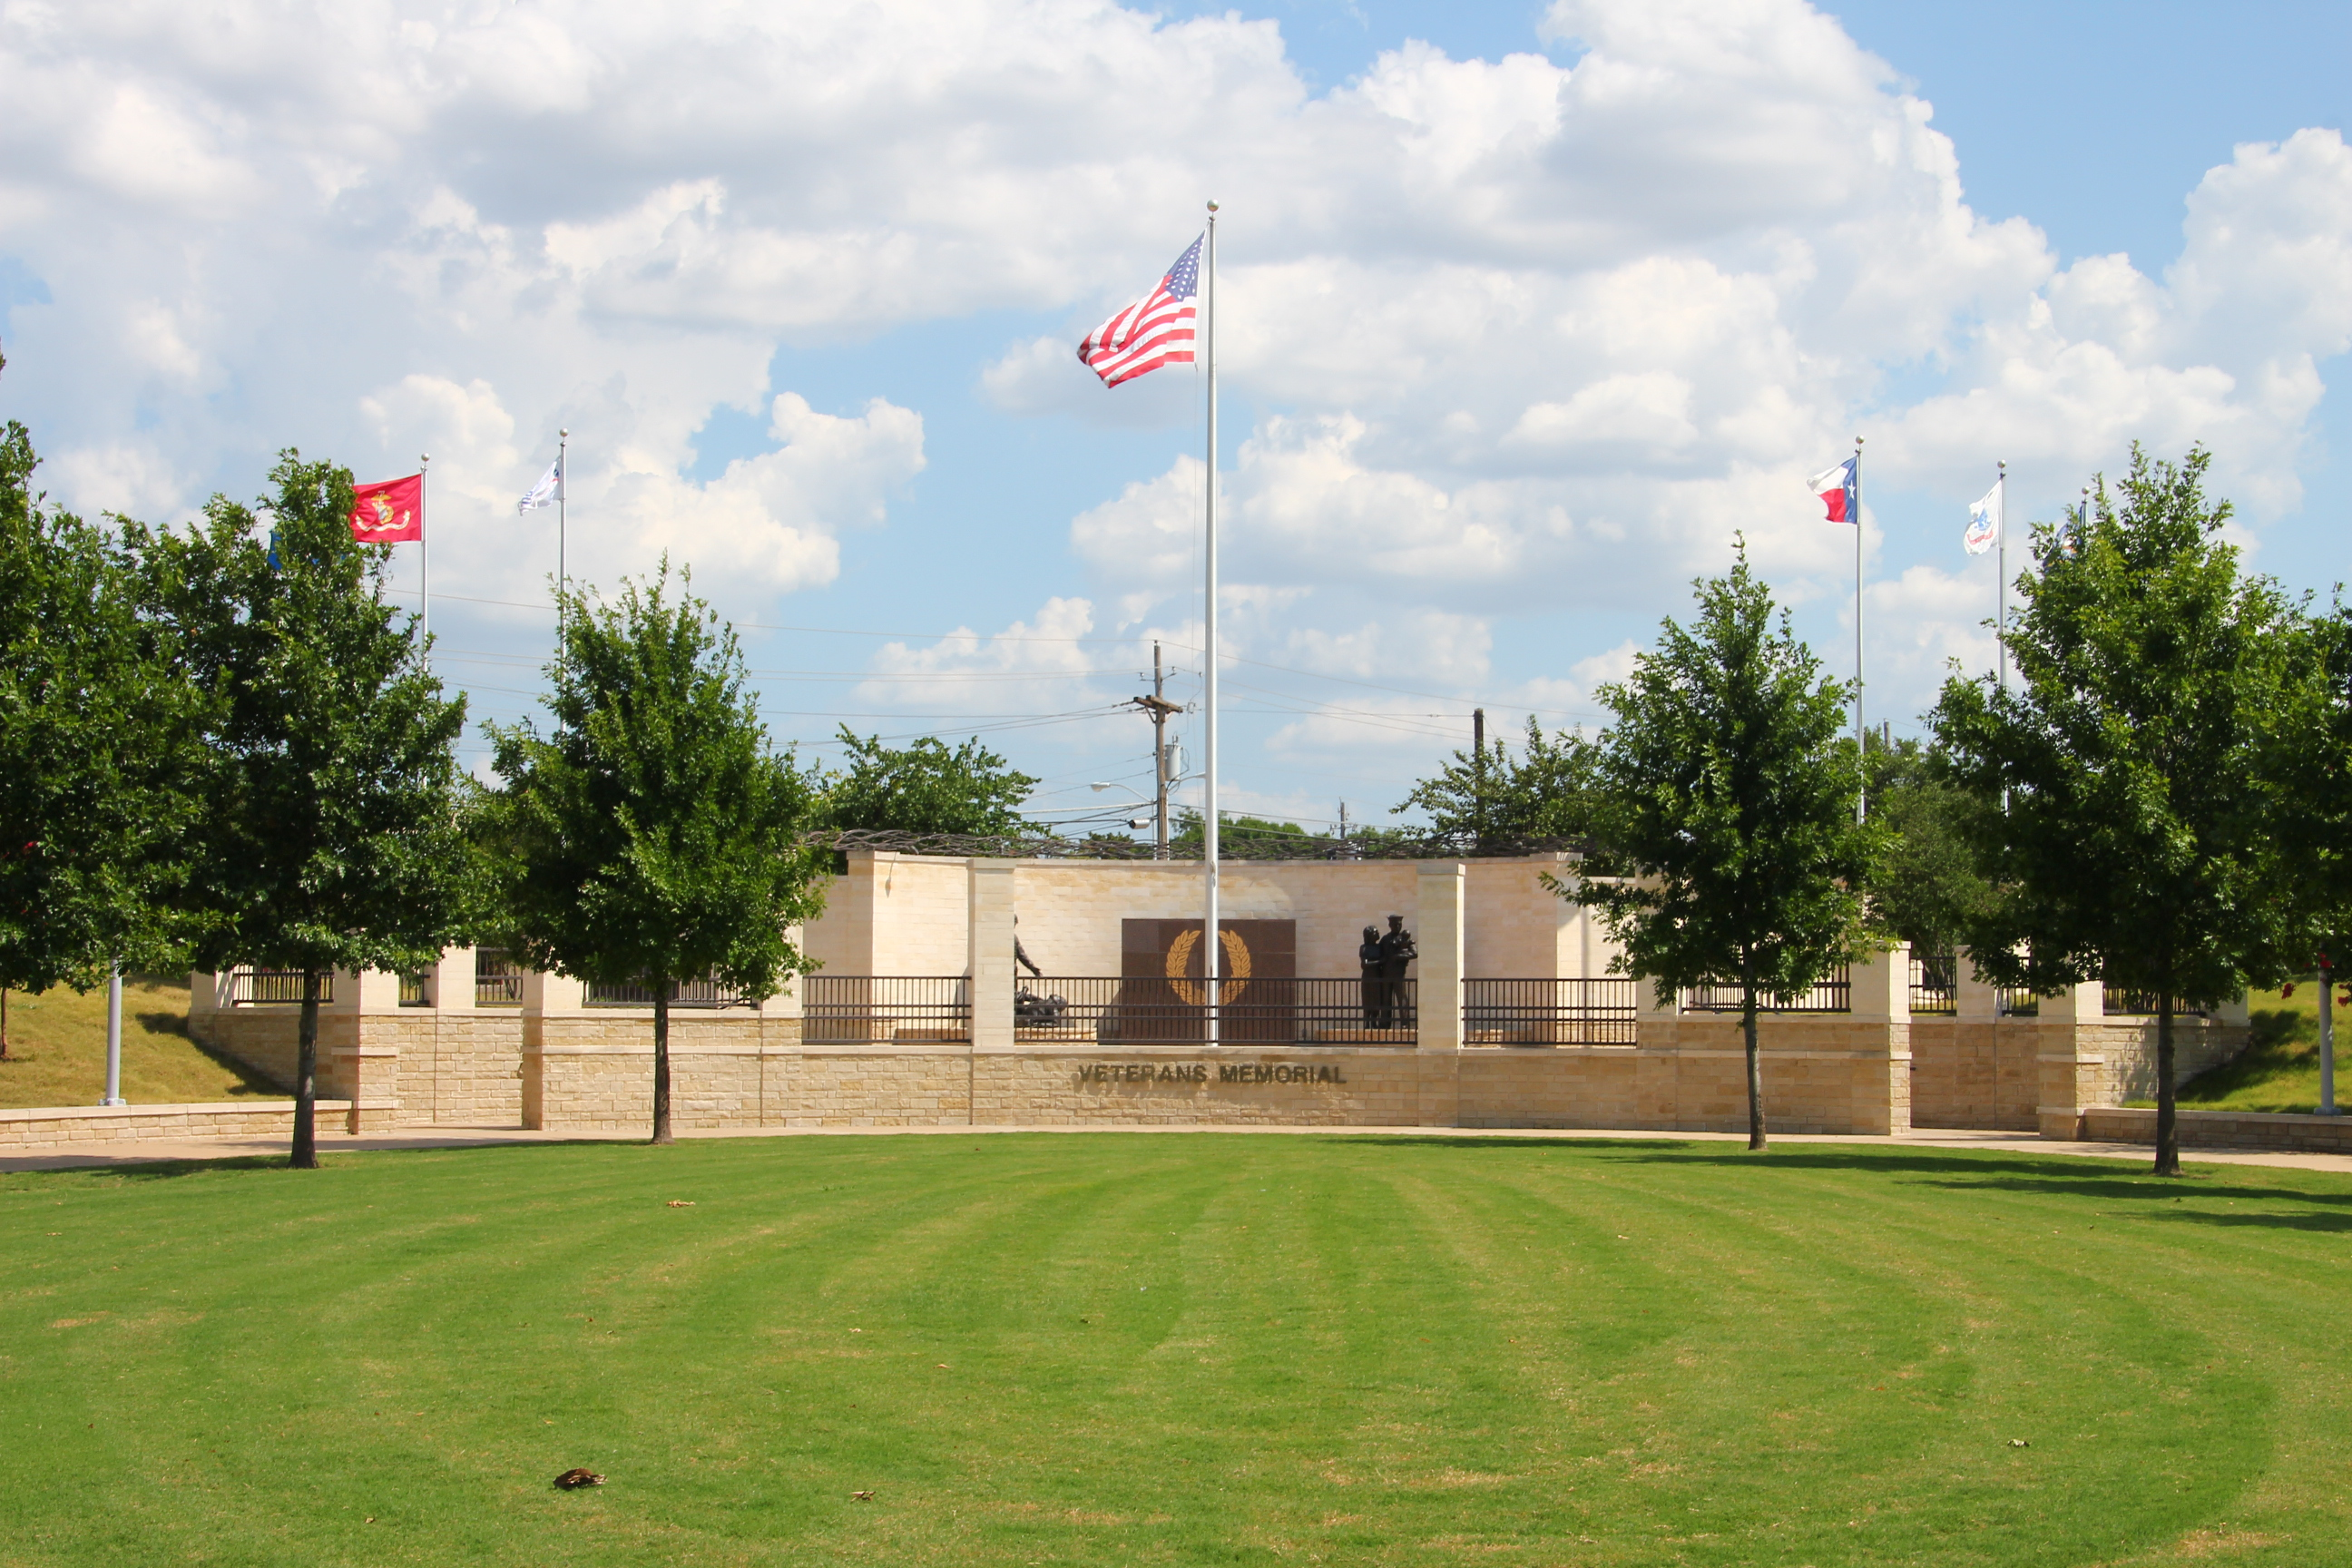 Veterans Memorial Park in Plano, TX